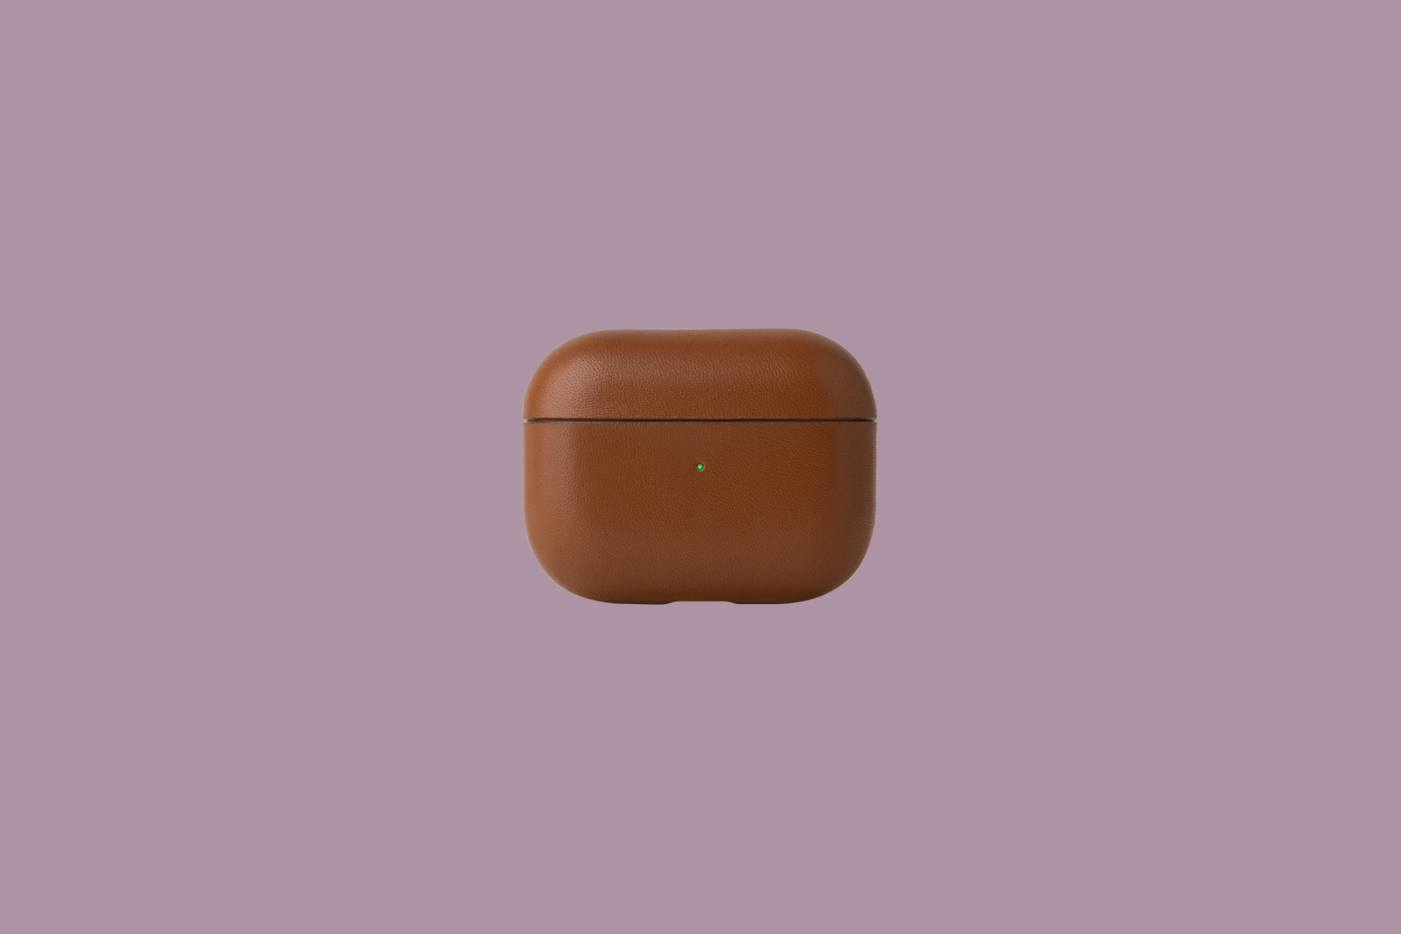 Native Union Leather AirPods Case